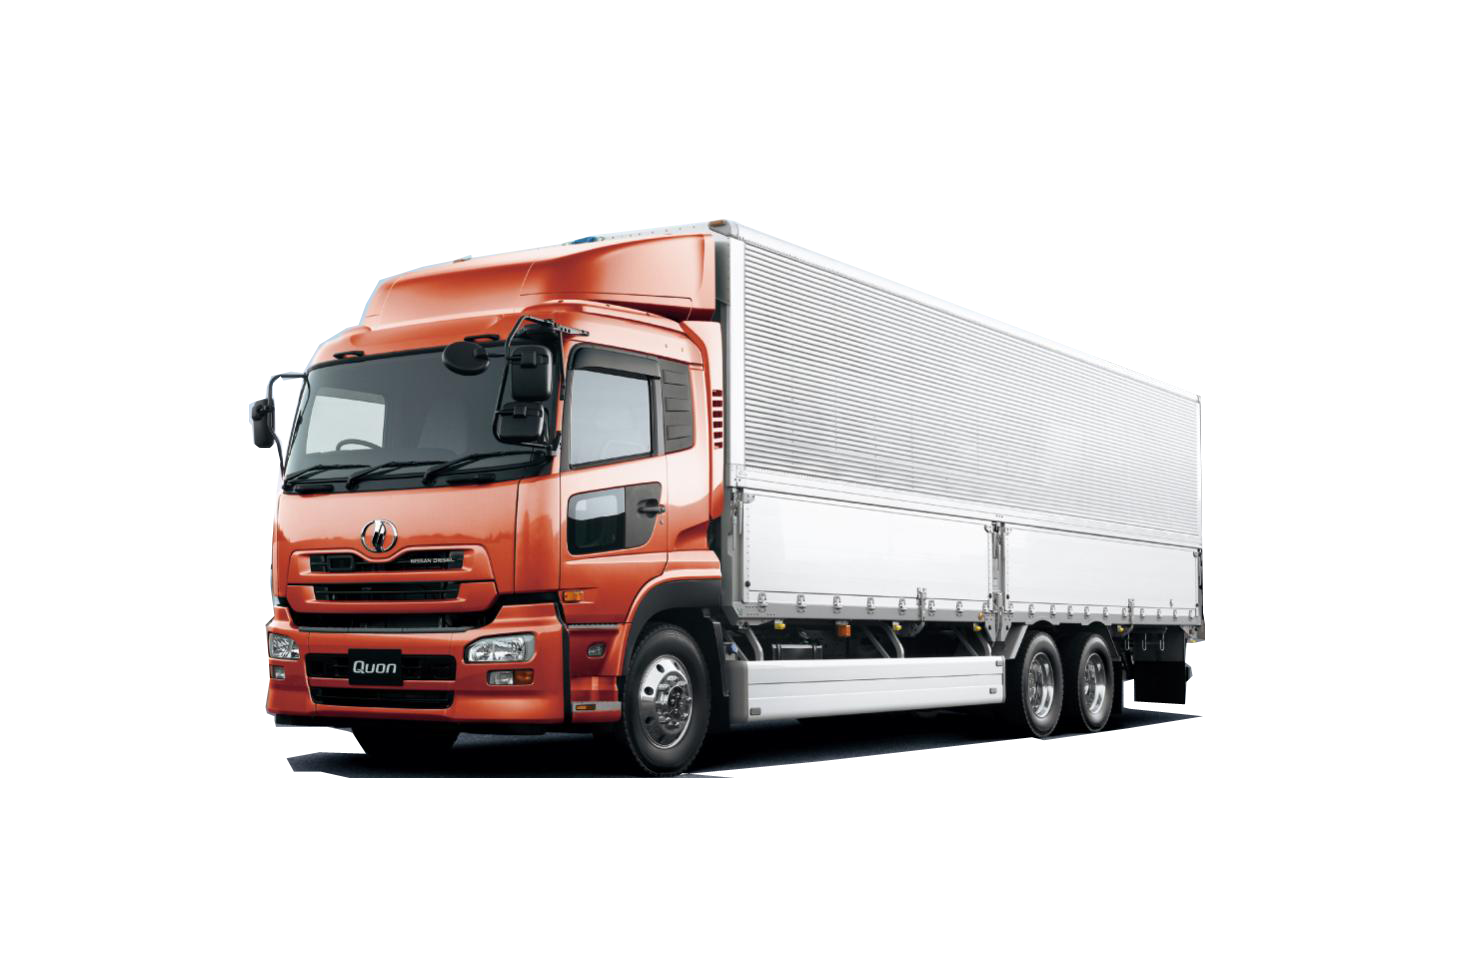 cargo truck png transparent cargo truck images pluspng #17239